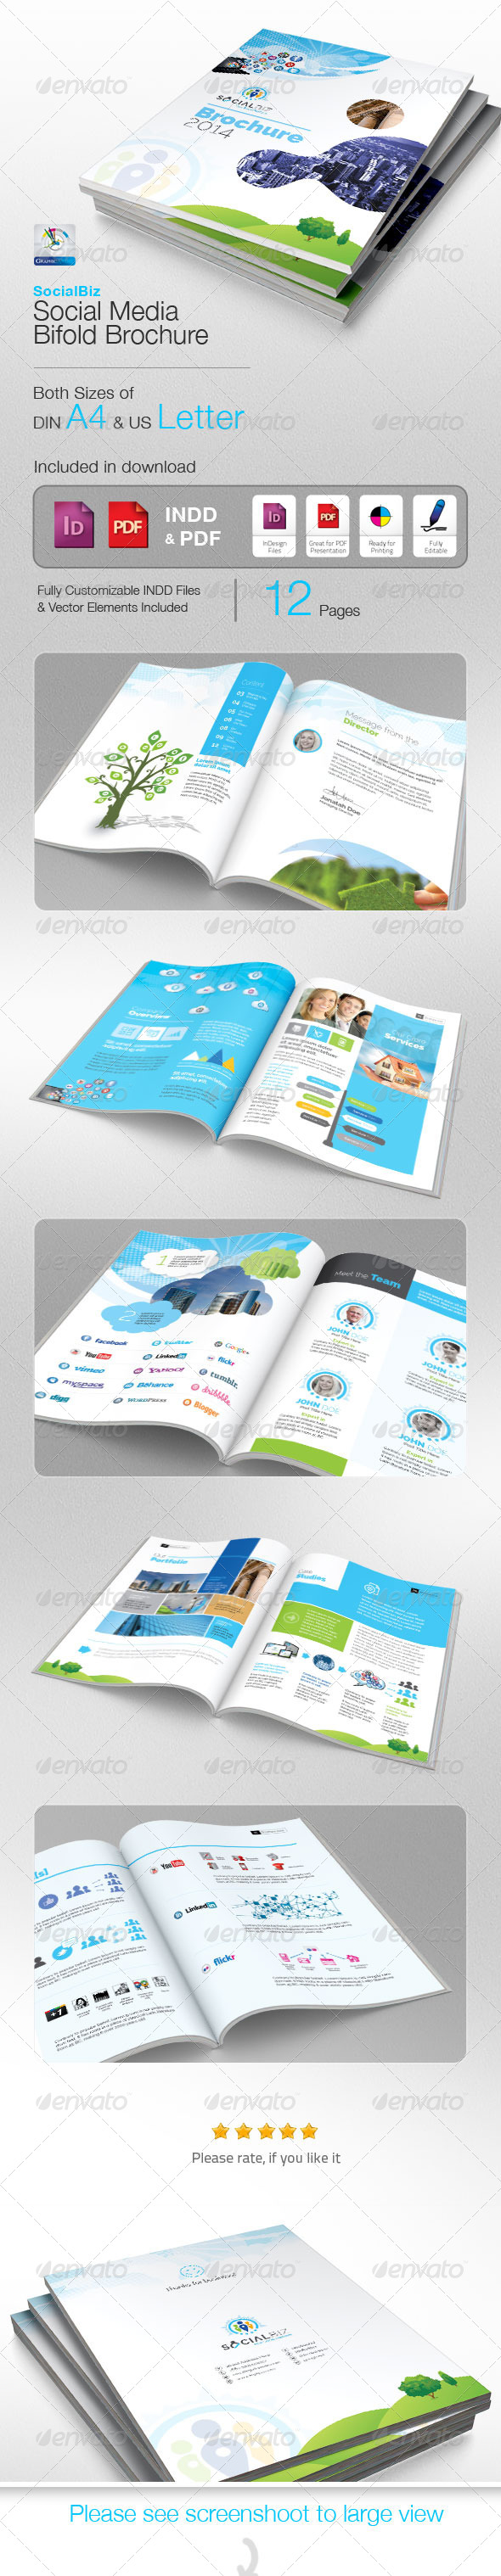 SocialBiz Professional Social Media Brochure - Corporate Brochures